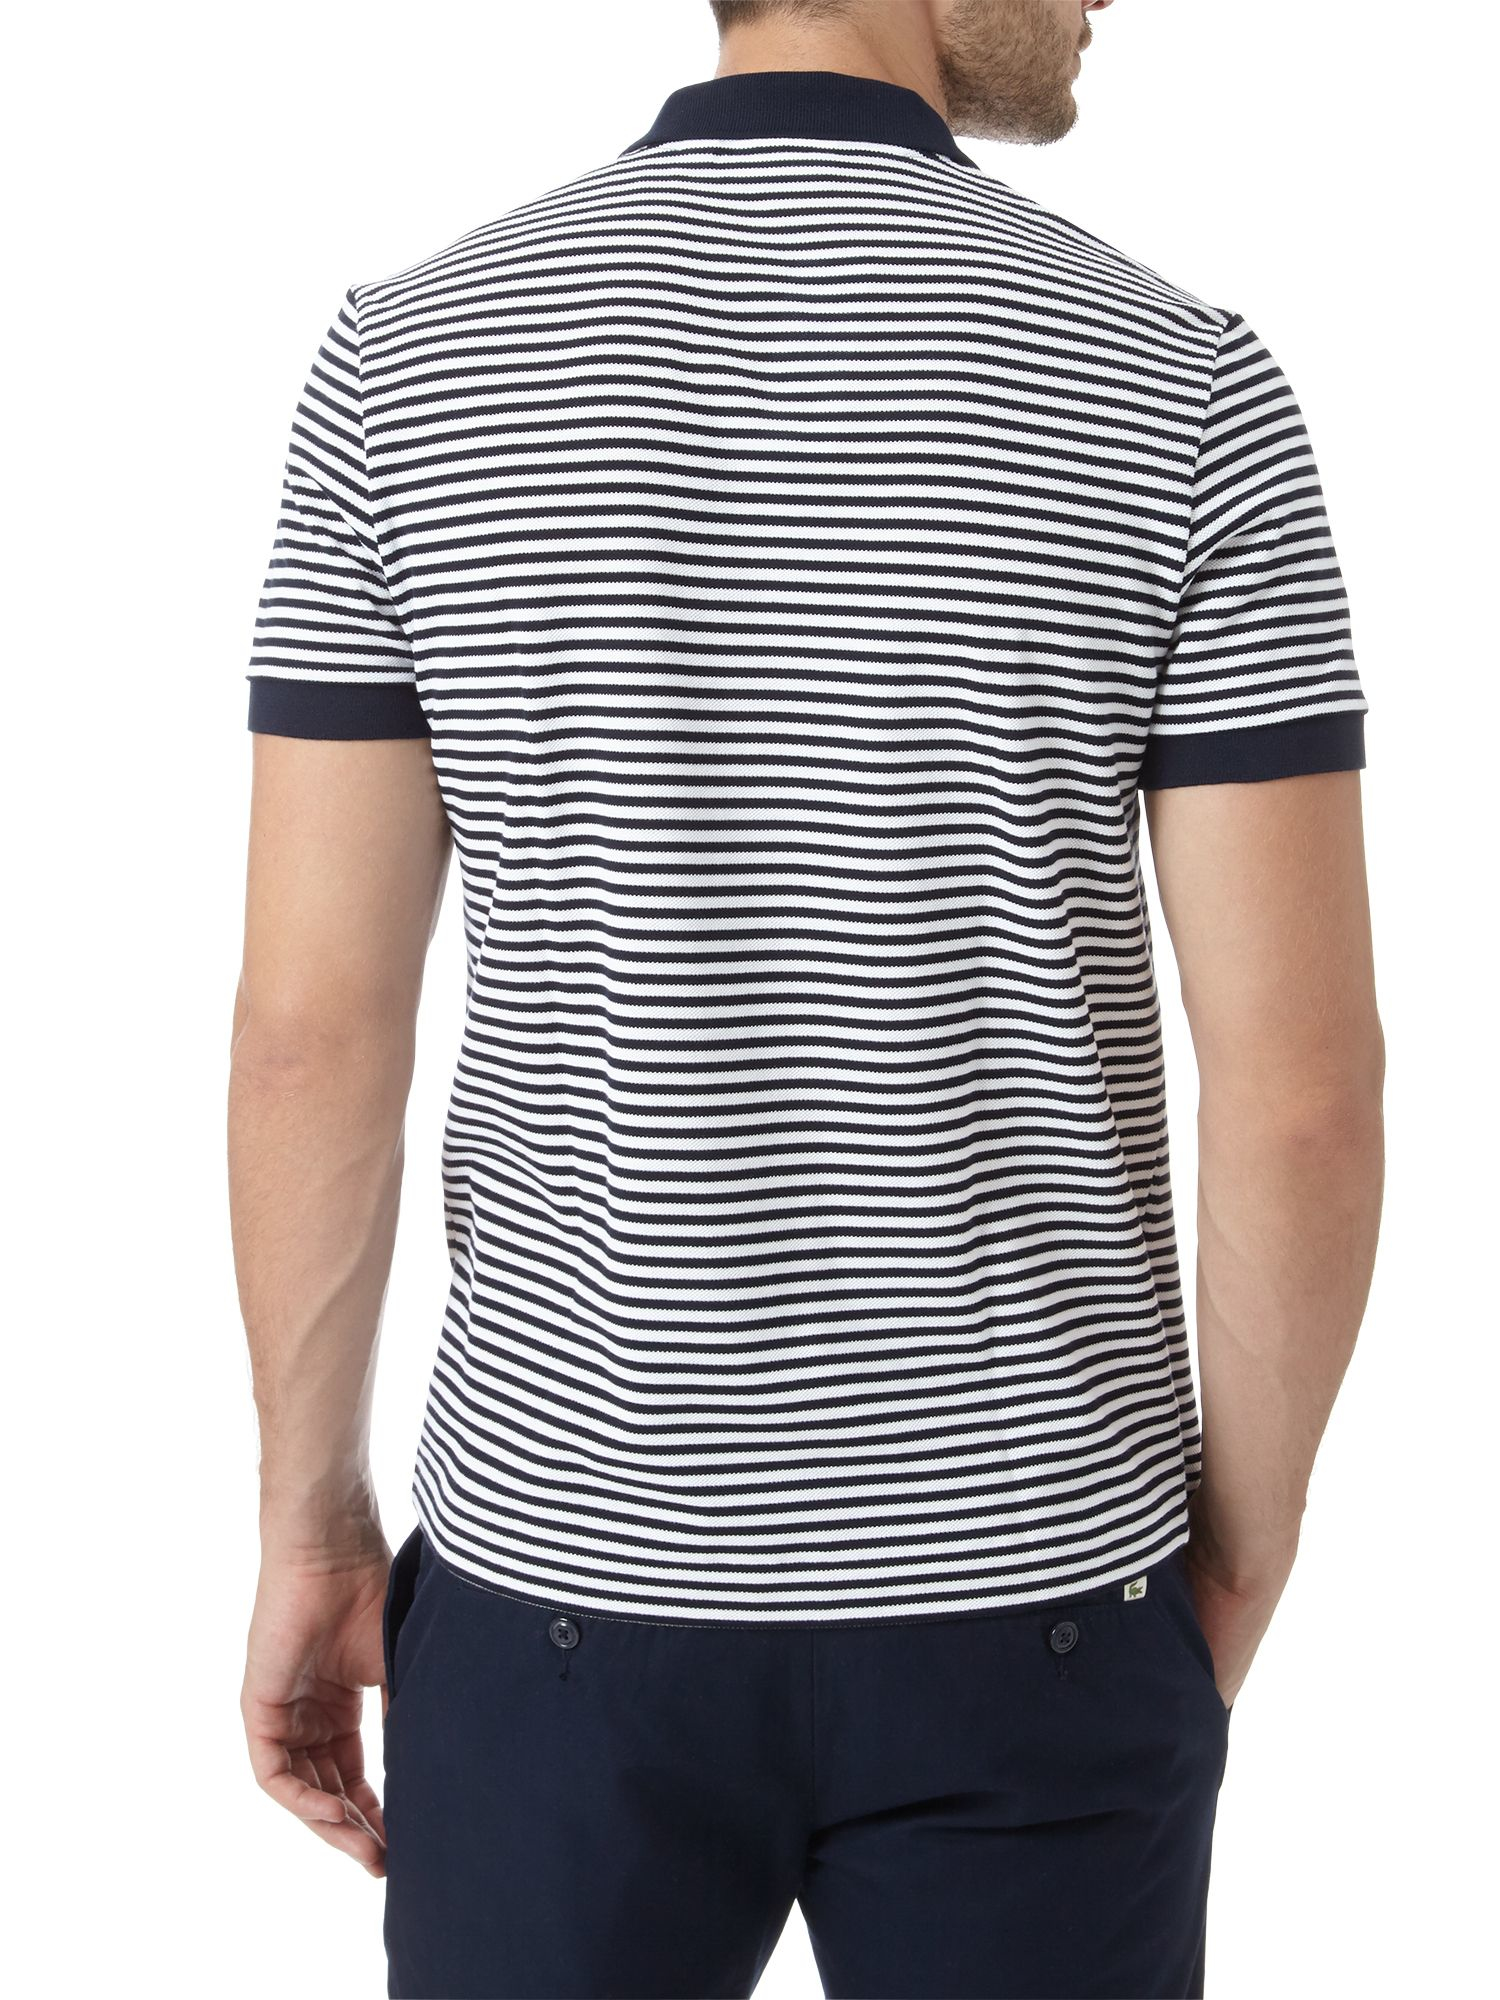 Lyst - Lacoste Striped Polo Shirt in Blue for Men